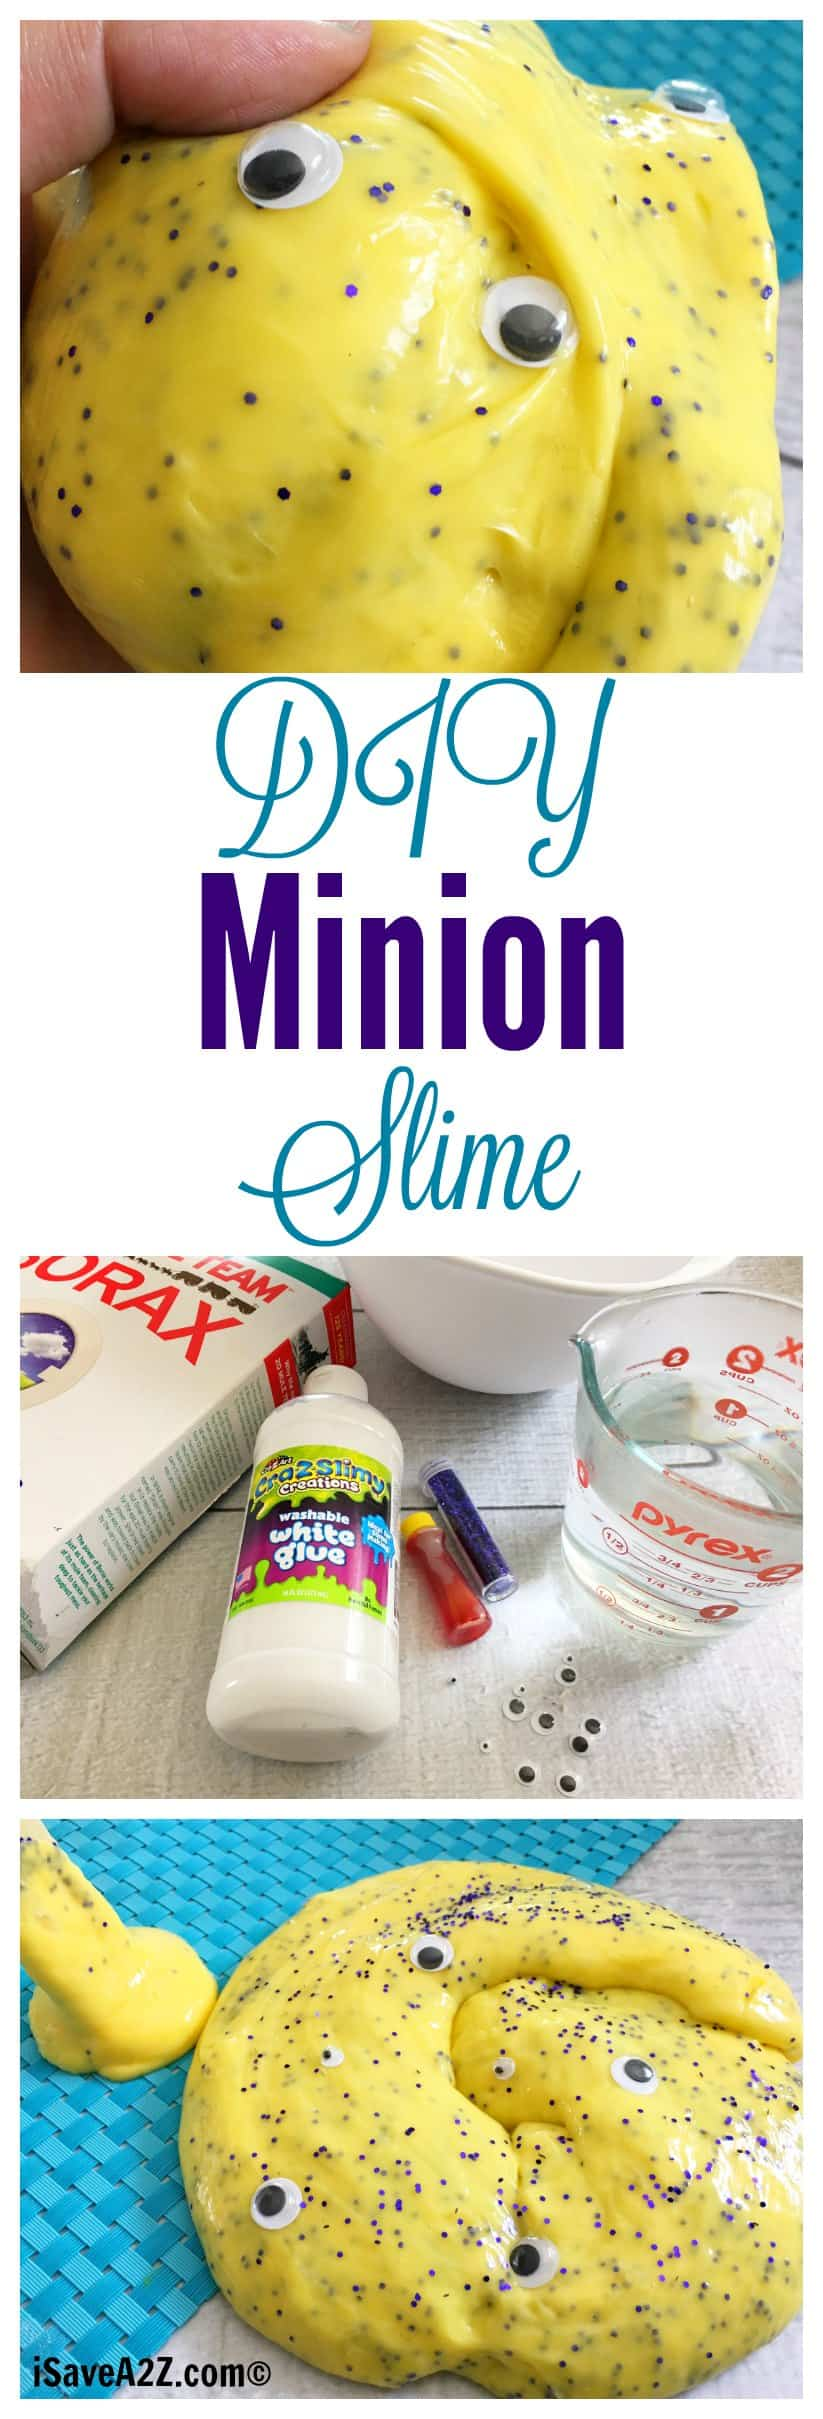 DIY Minion Slime